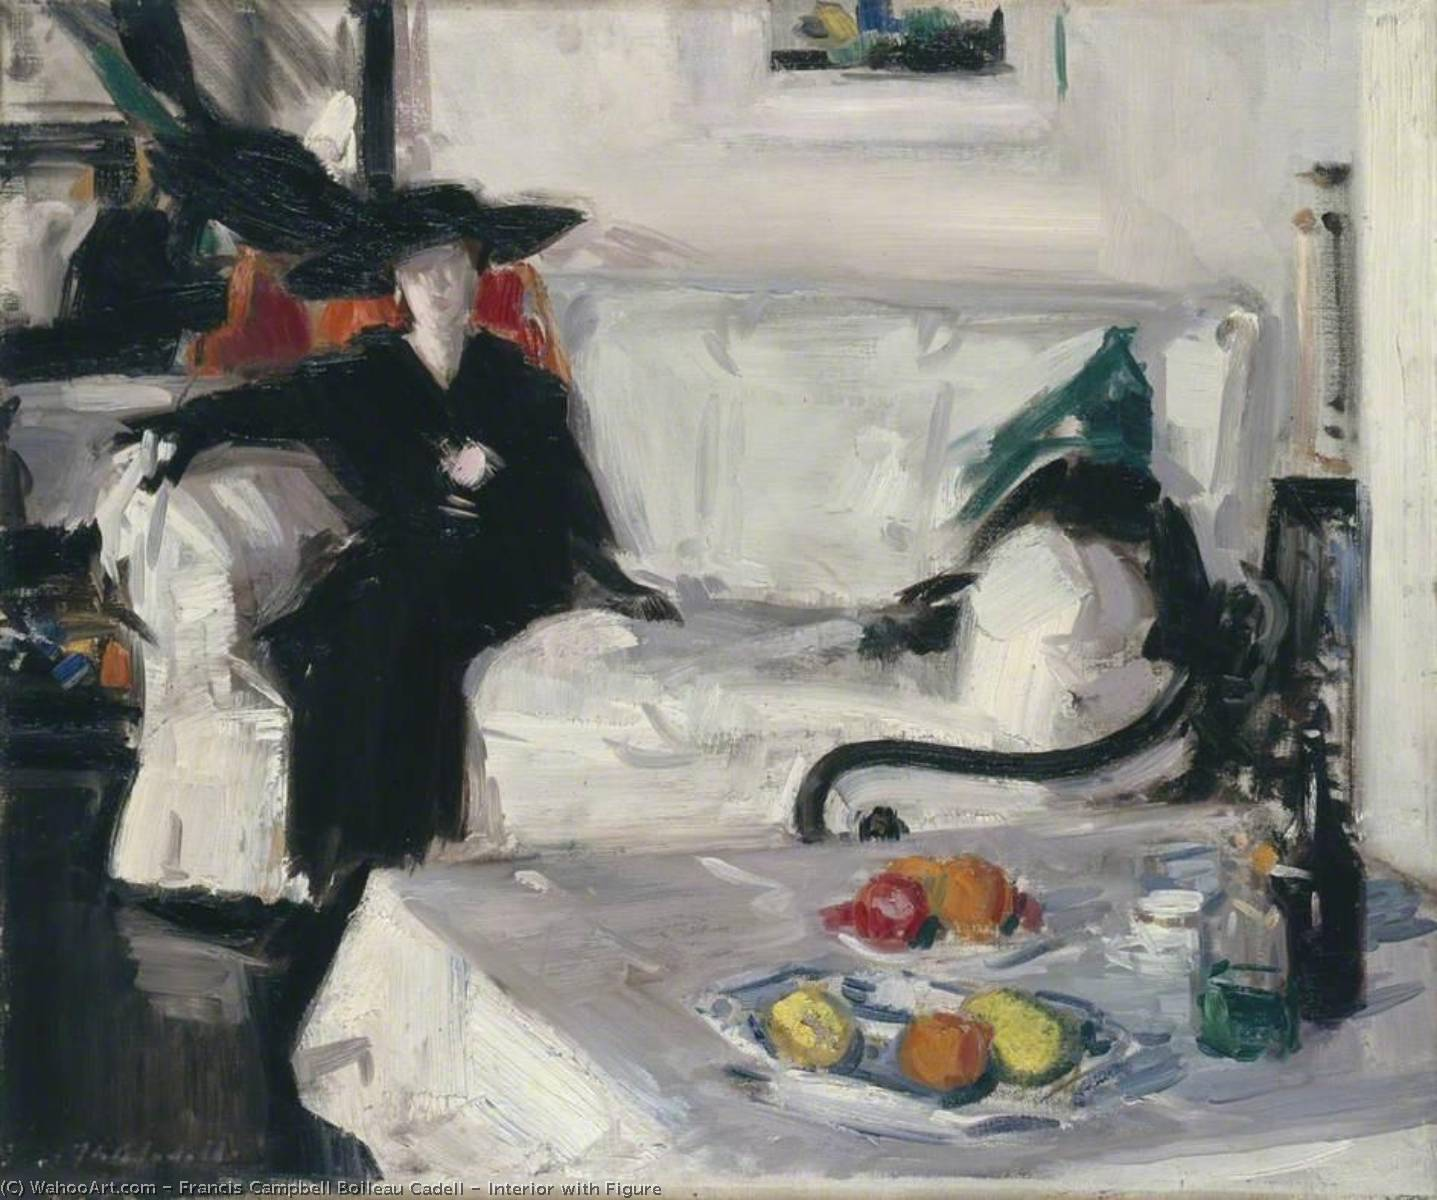 Interior with Figure, Oil On Canvas by Francis Campbell Boileau Cadell (1883-1937)